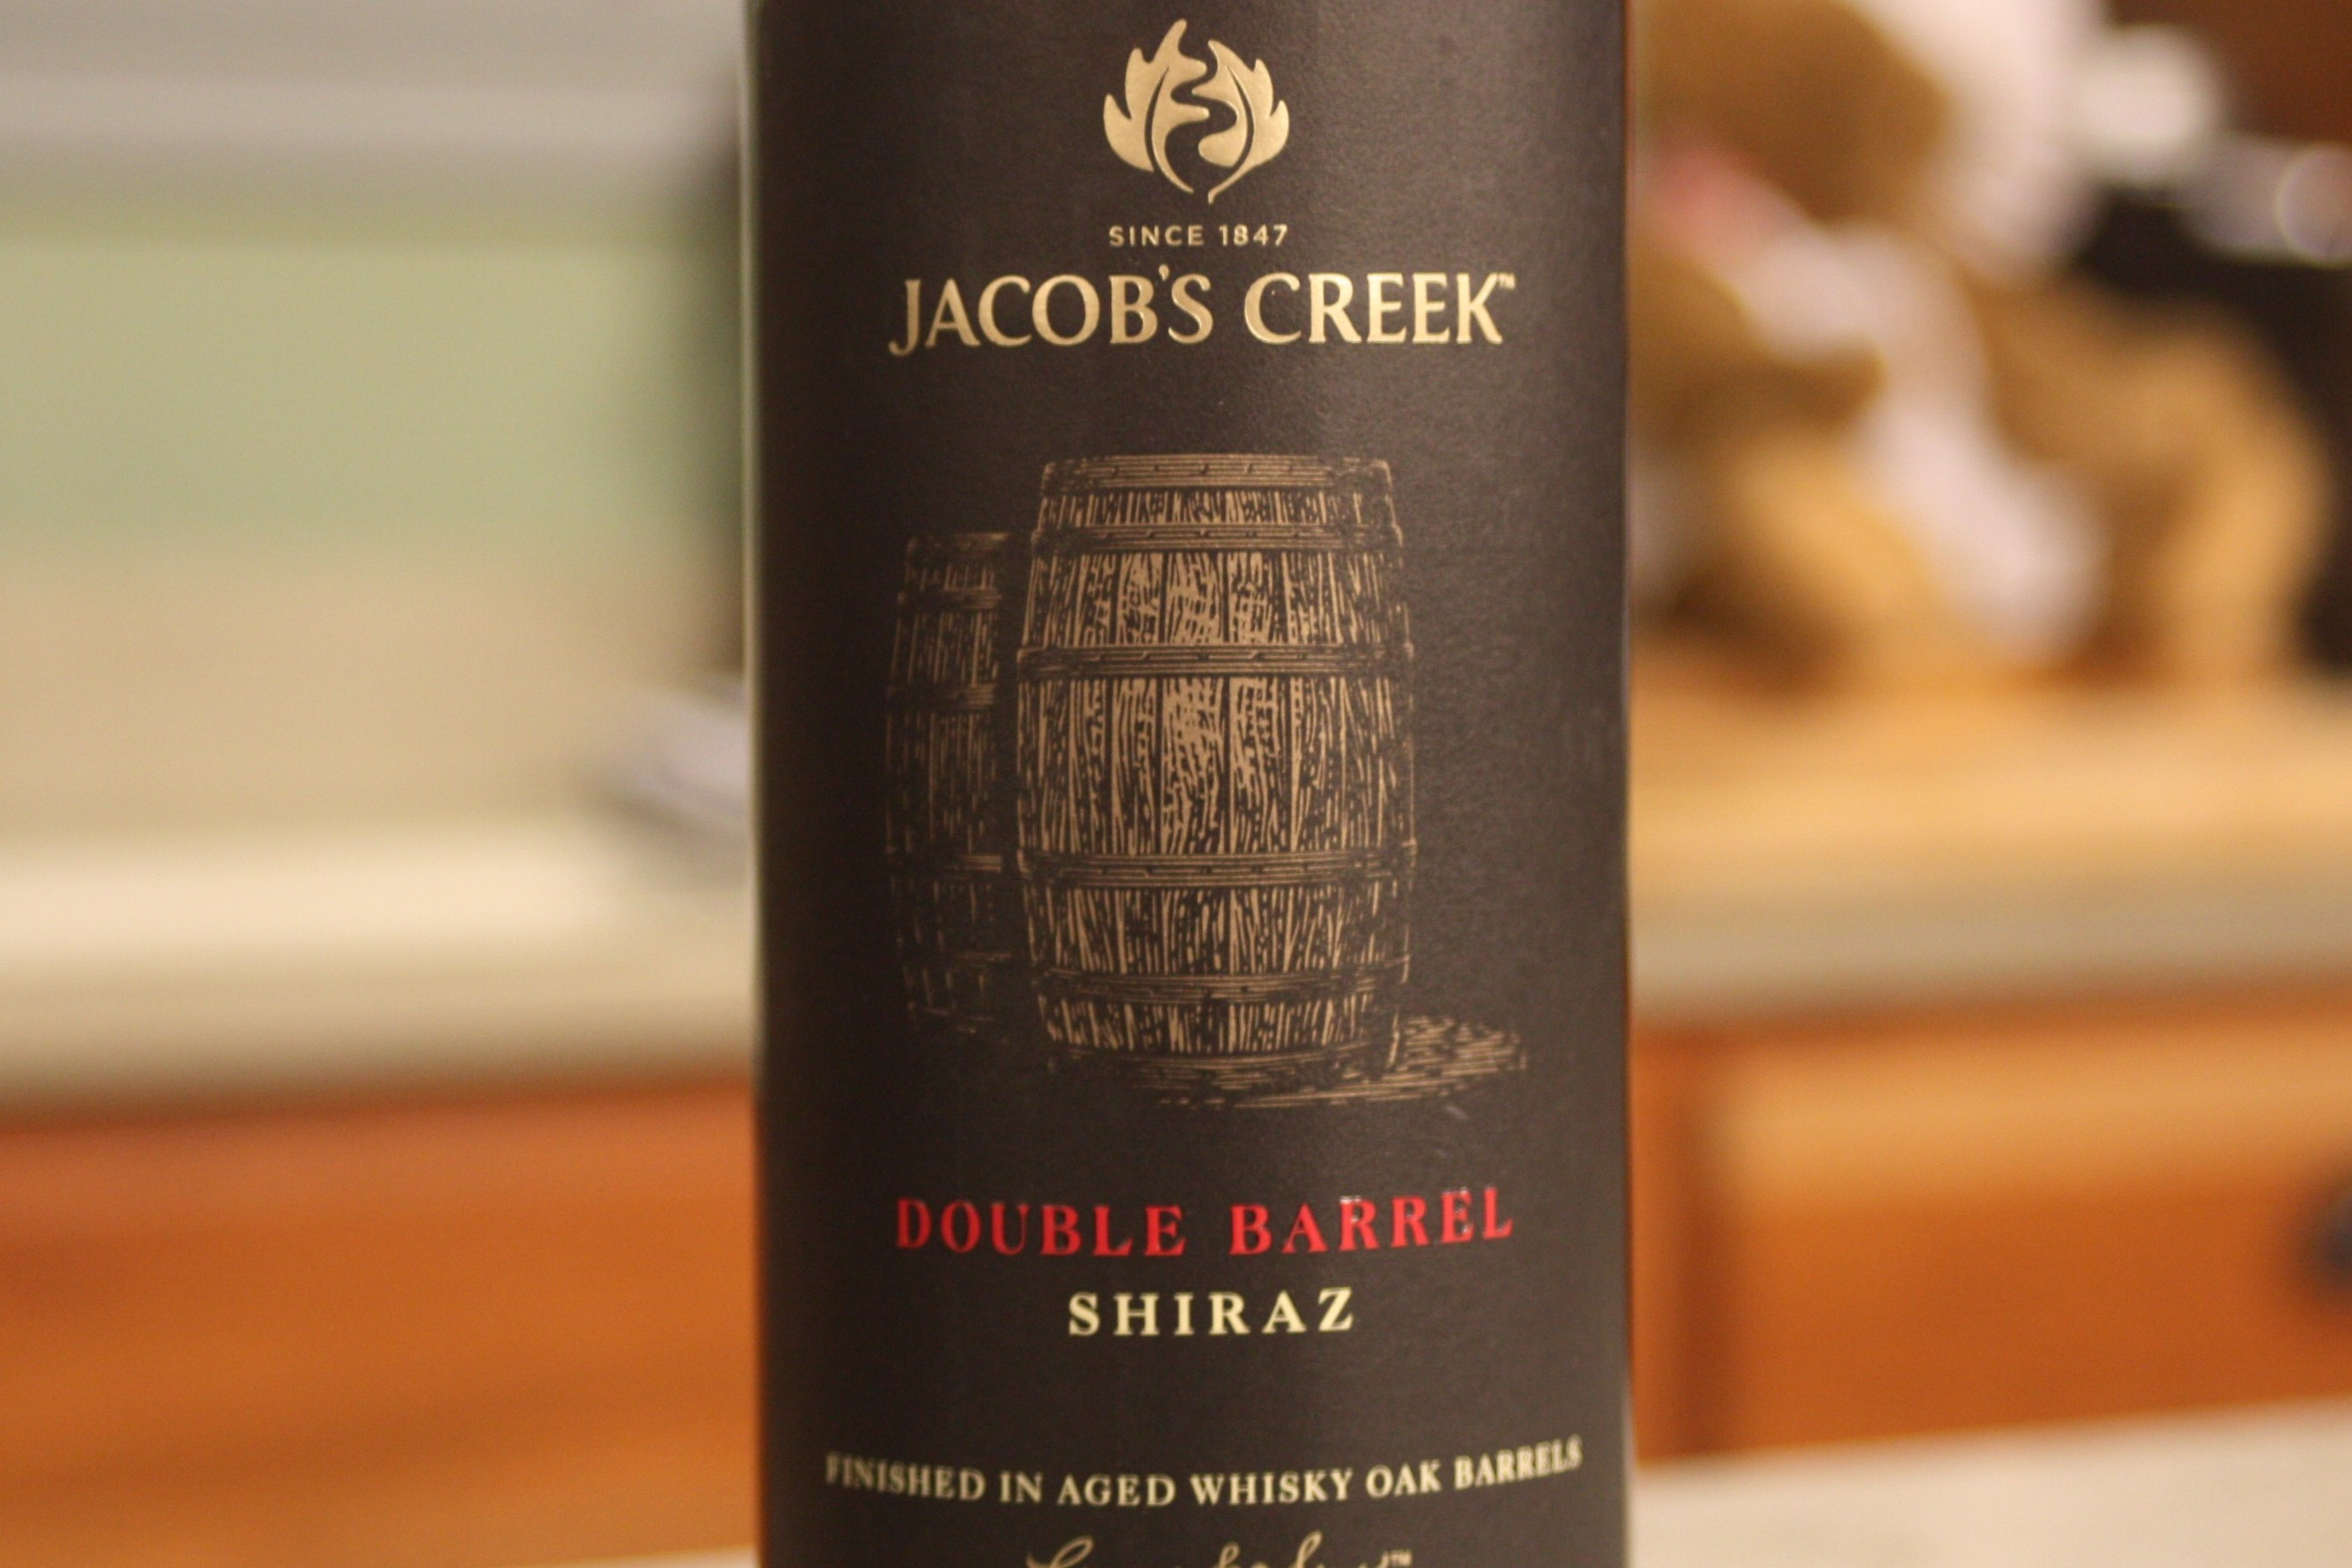 Jacob's Creek, Double Barrel Shiraz (NV)